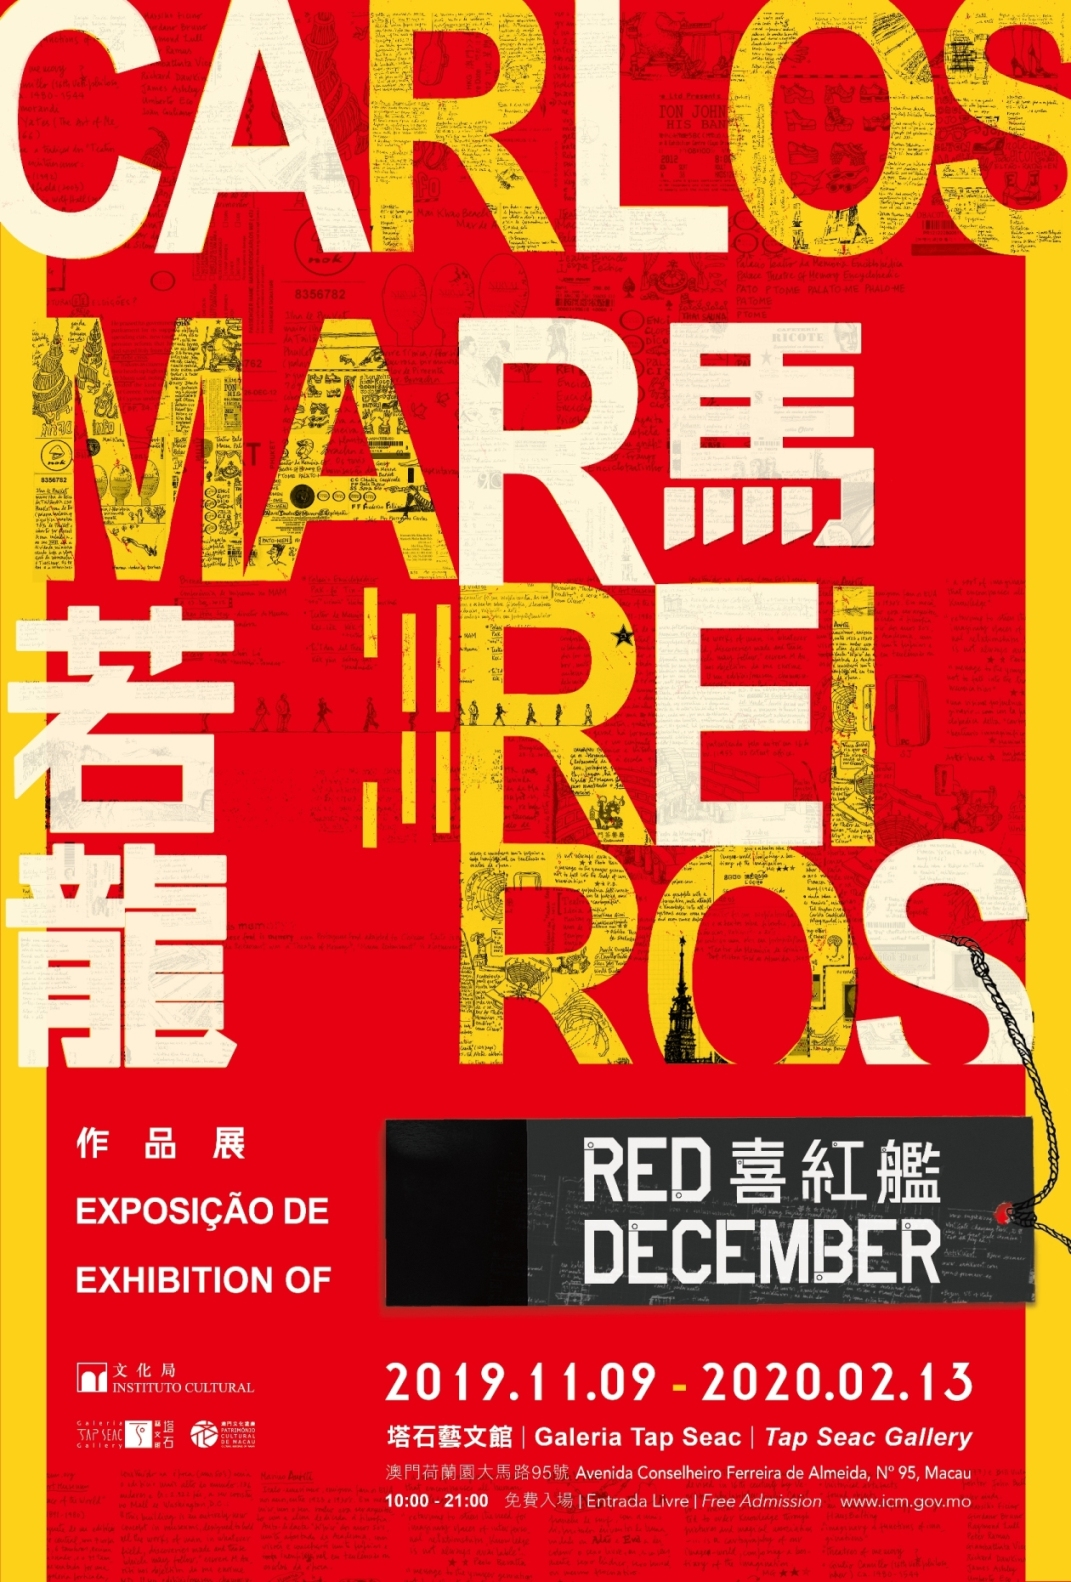 red december exhibition Carlos Marreiros